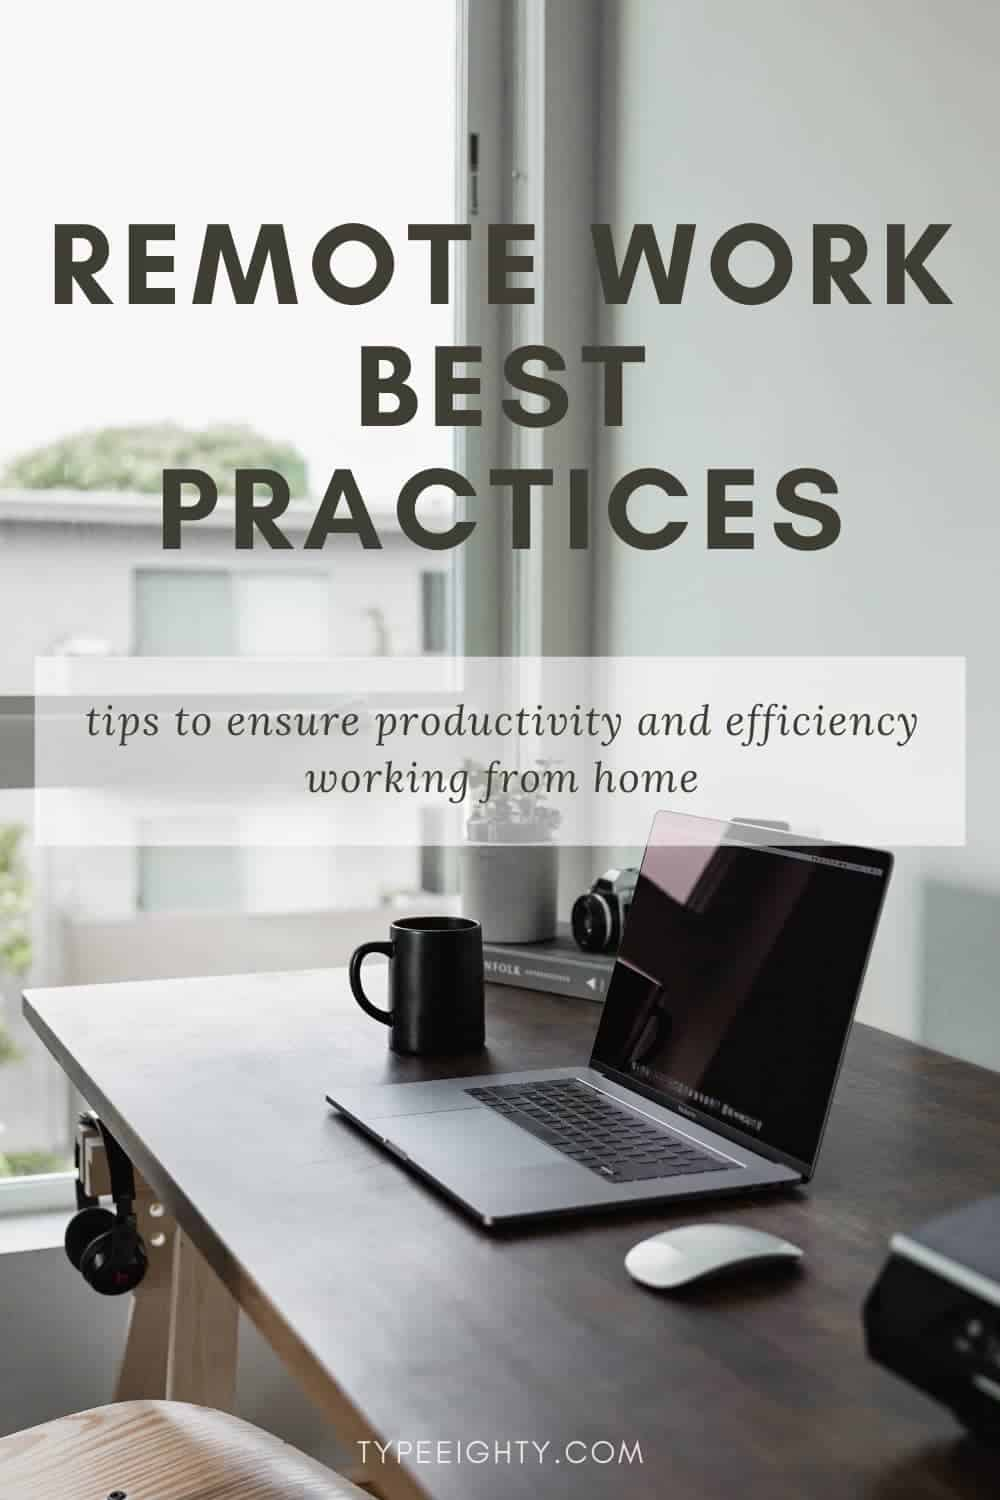 Remote Work Best Practices: 5 Tips to Ensure the Efficiency of Remote Work